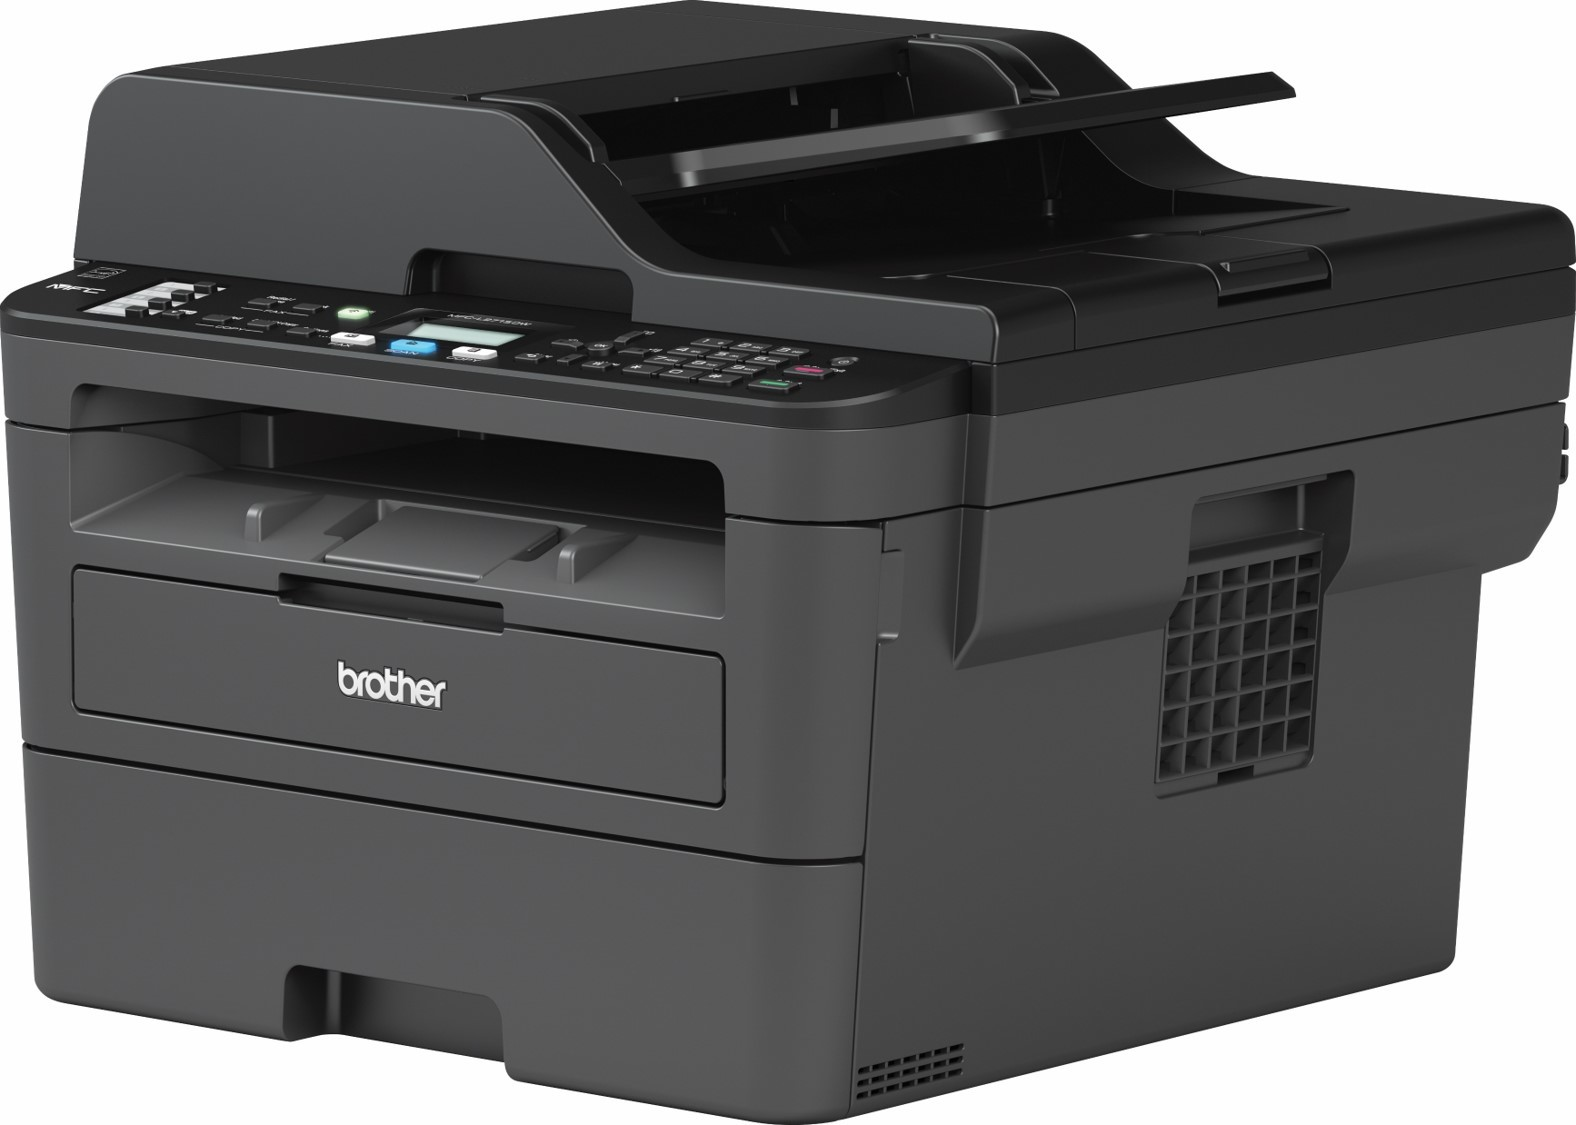 Brother: MFCL2713DW B&W All-In-One Laser Printer image